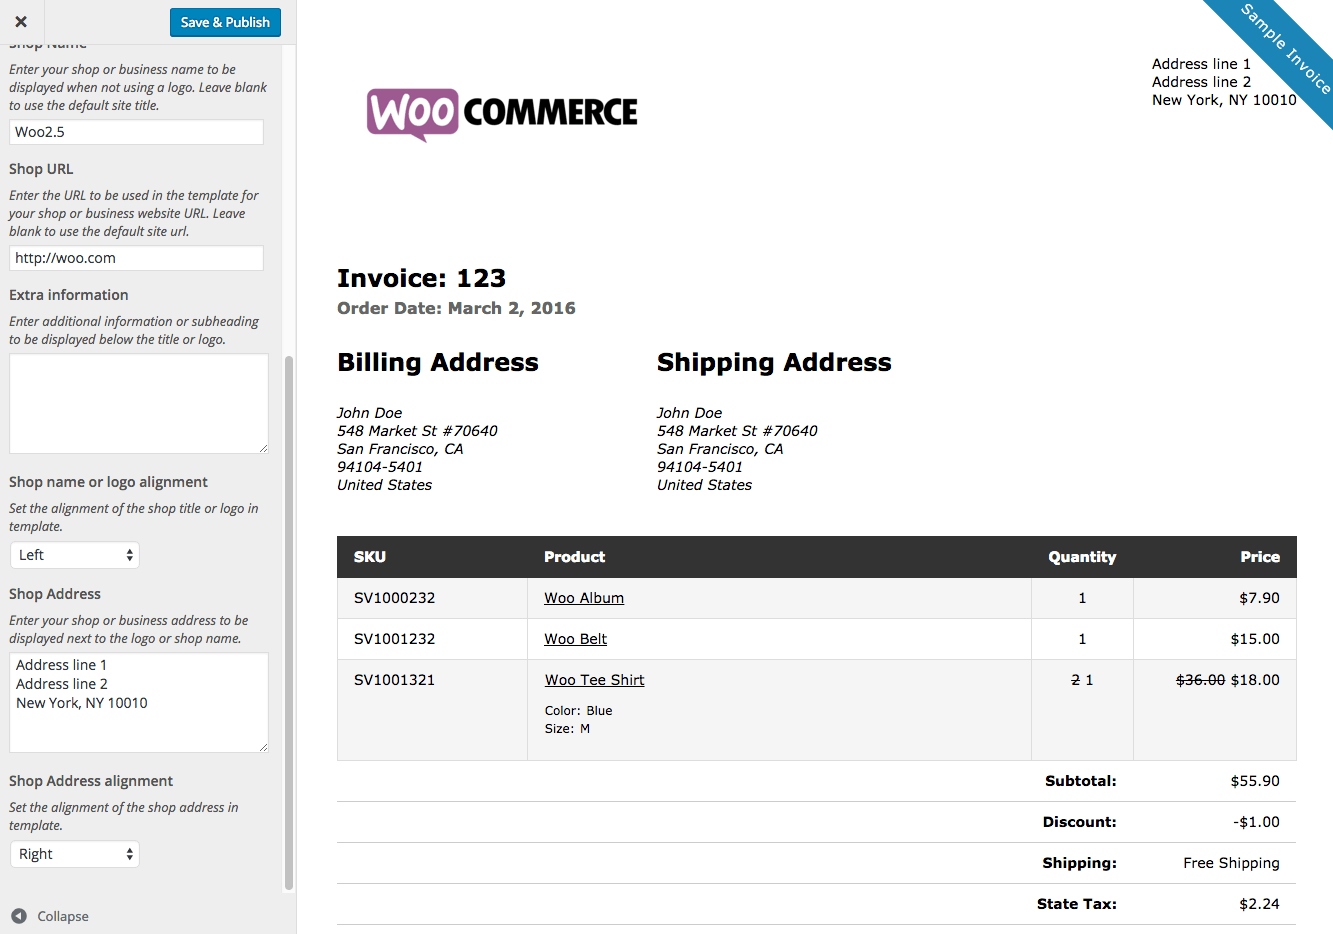 Hius  Terrific Print Invoices Amp Packing Lists  Woocommerce With Fascinating Woocommerce Print Invoices  Packing Lists Customizer With Astonishing Houston Taxi Receipt Also Free Receipt Scanner App In Addition Download Receipt And Receipt Letter Template As Well As Rebate Receipt Additionally Payment Receipt Format In Word From Woocommercecom With Hius  Fascinating Print Invoices Amp Packing Lists  Woocommerce With Astonishing Woocommerce Print Invoices  Packing Lists Customizer And Terrific Houston Taxi Receipt Also Free Receipt Scanner App In Addition Download Receipt From Woocommercecom